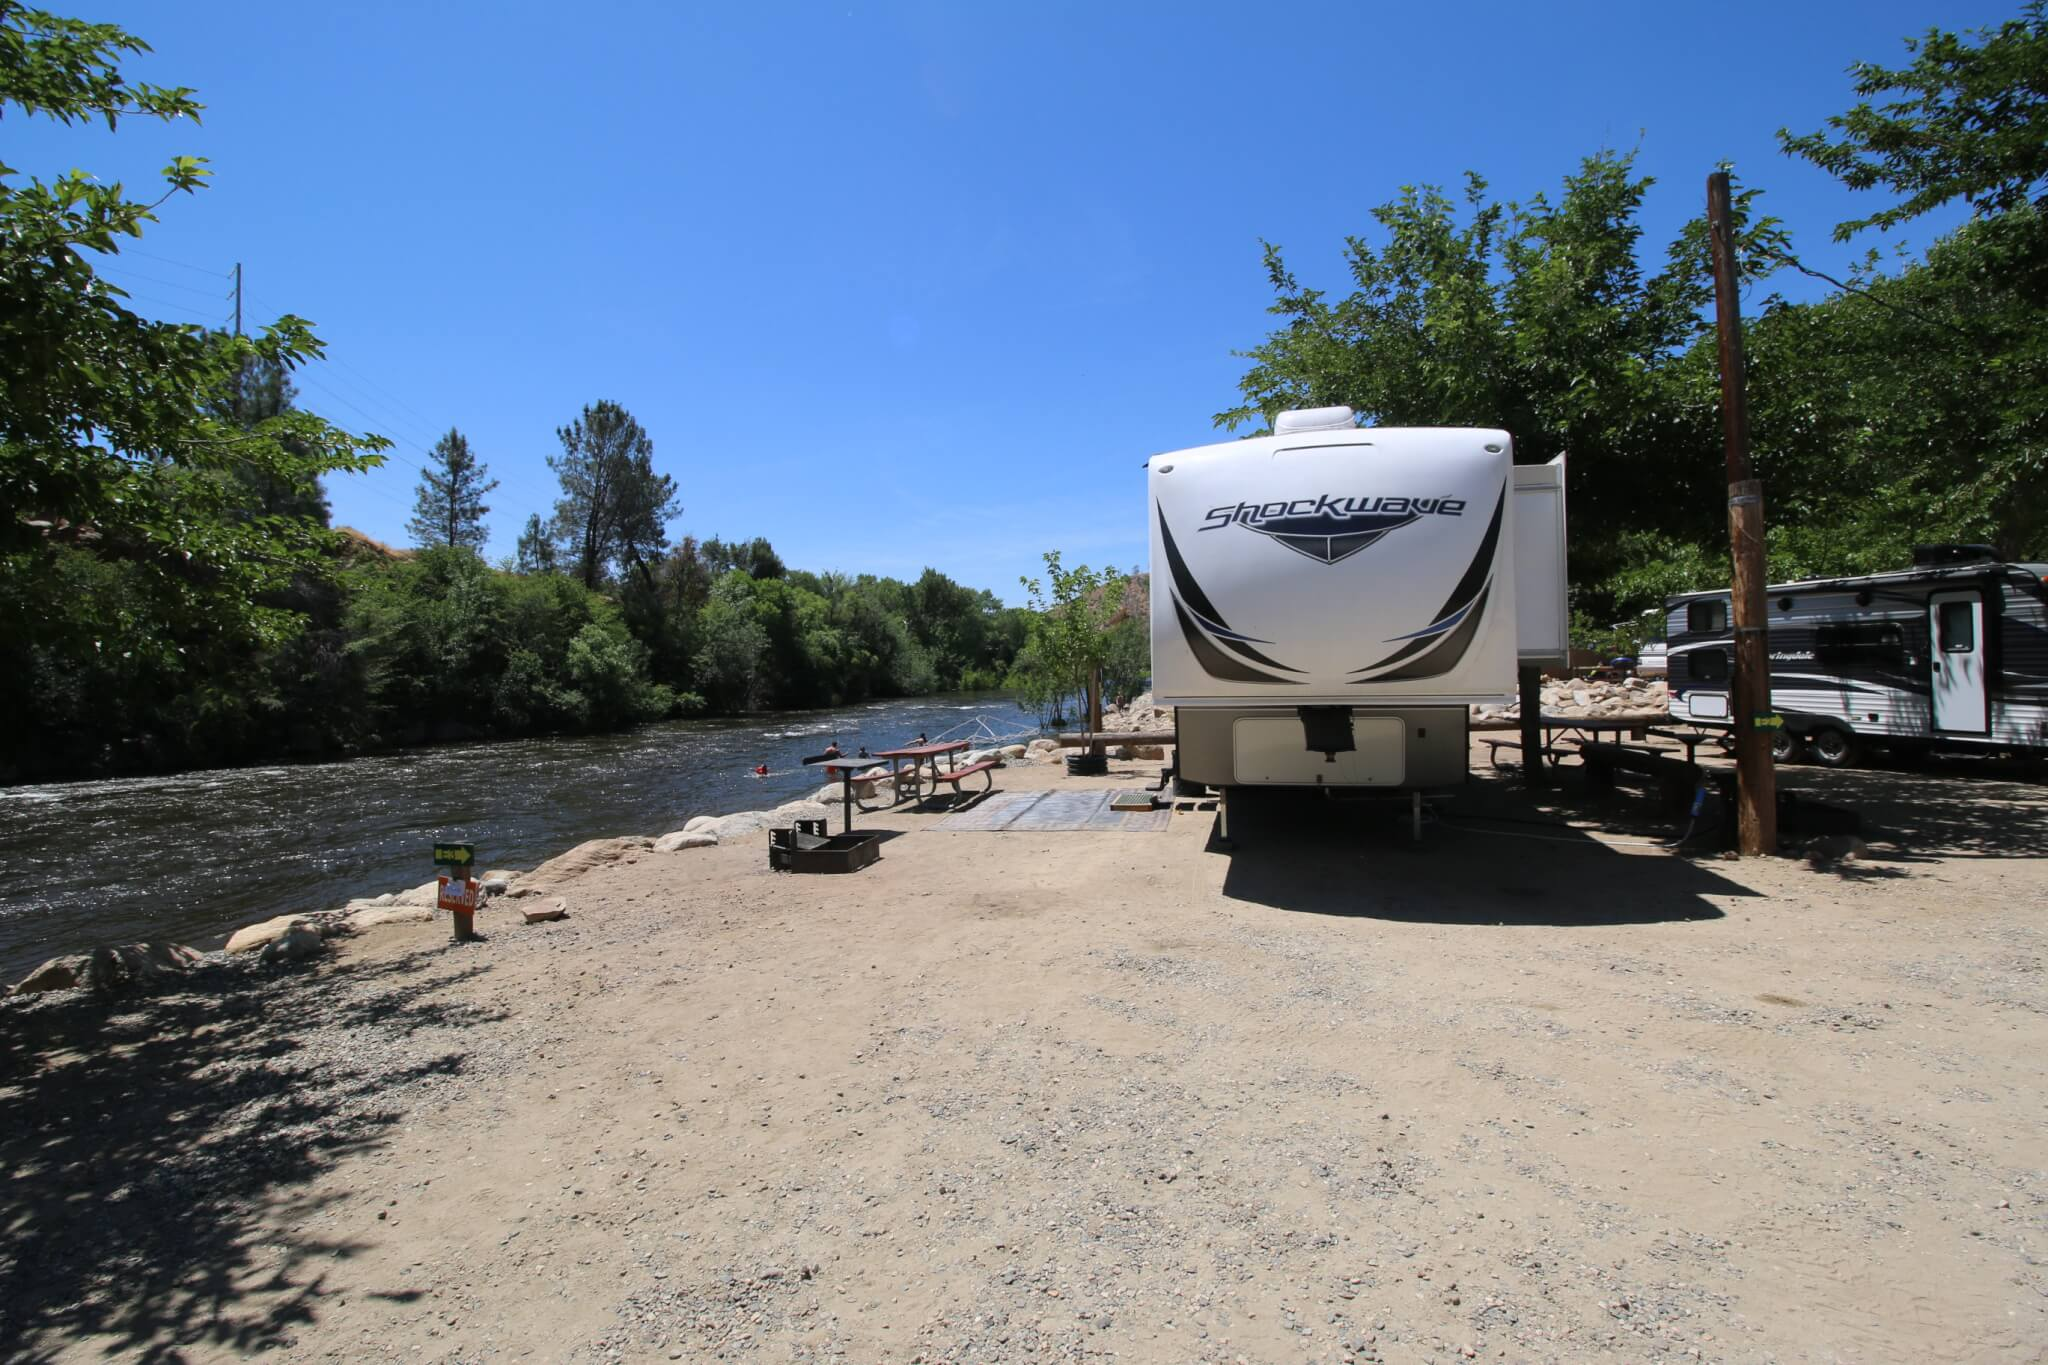 Kern River Campgrounds - Camp Kernville Site E3